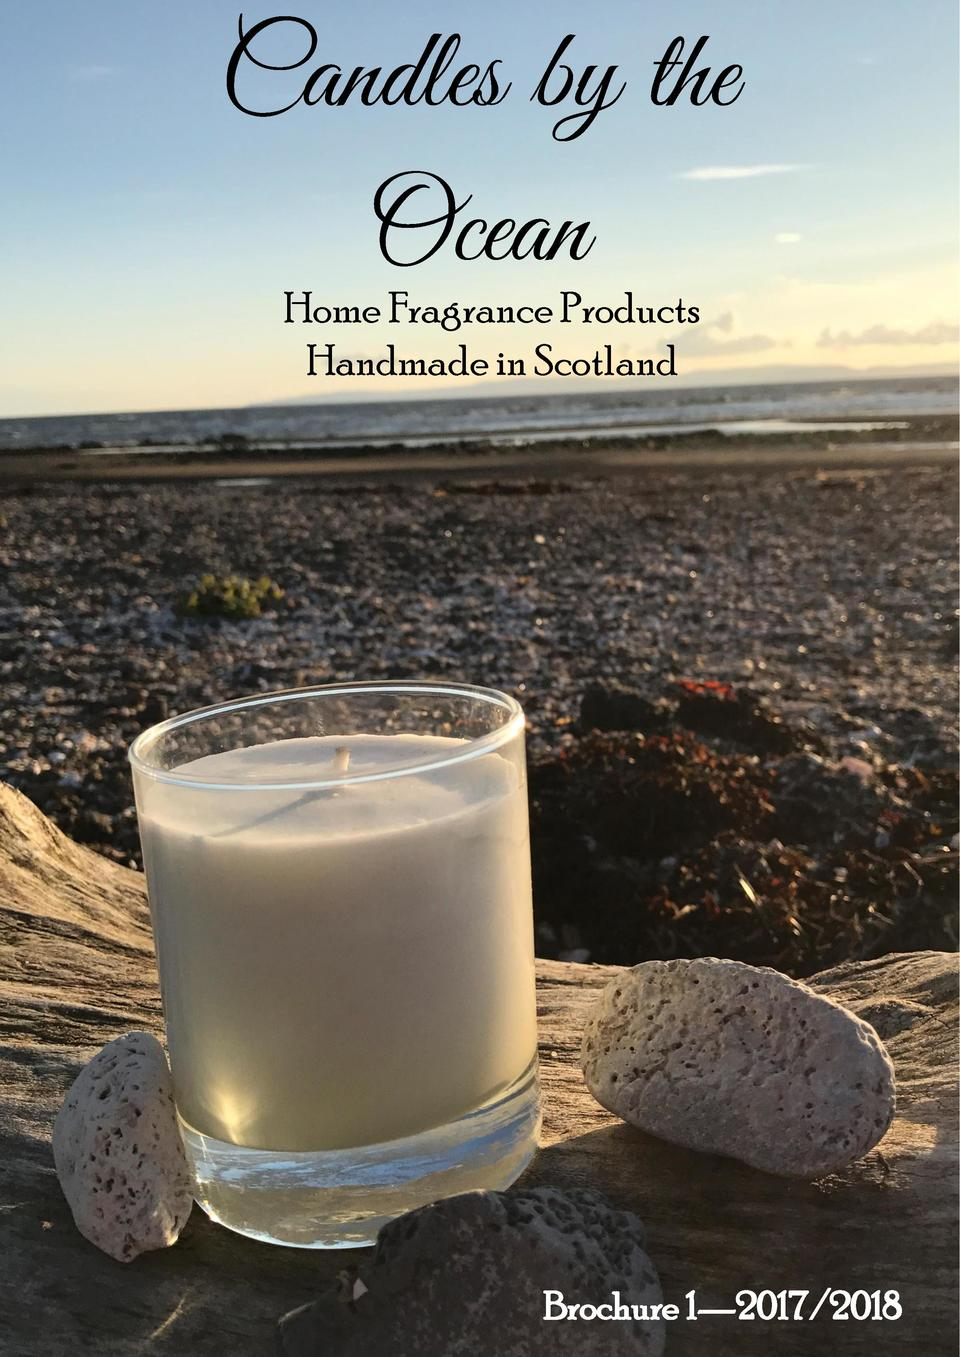 Candles by the Ocean Home Fragrance Products Handmade in Scotland  Brochure 1   2017 2018